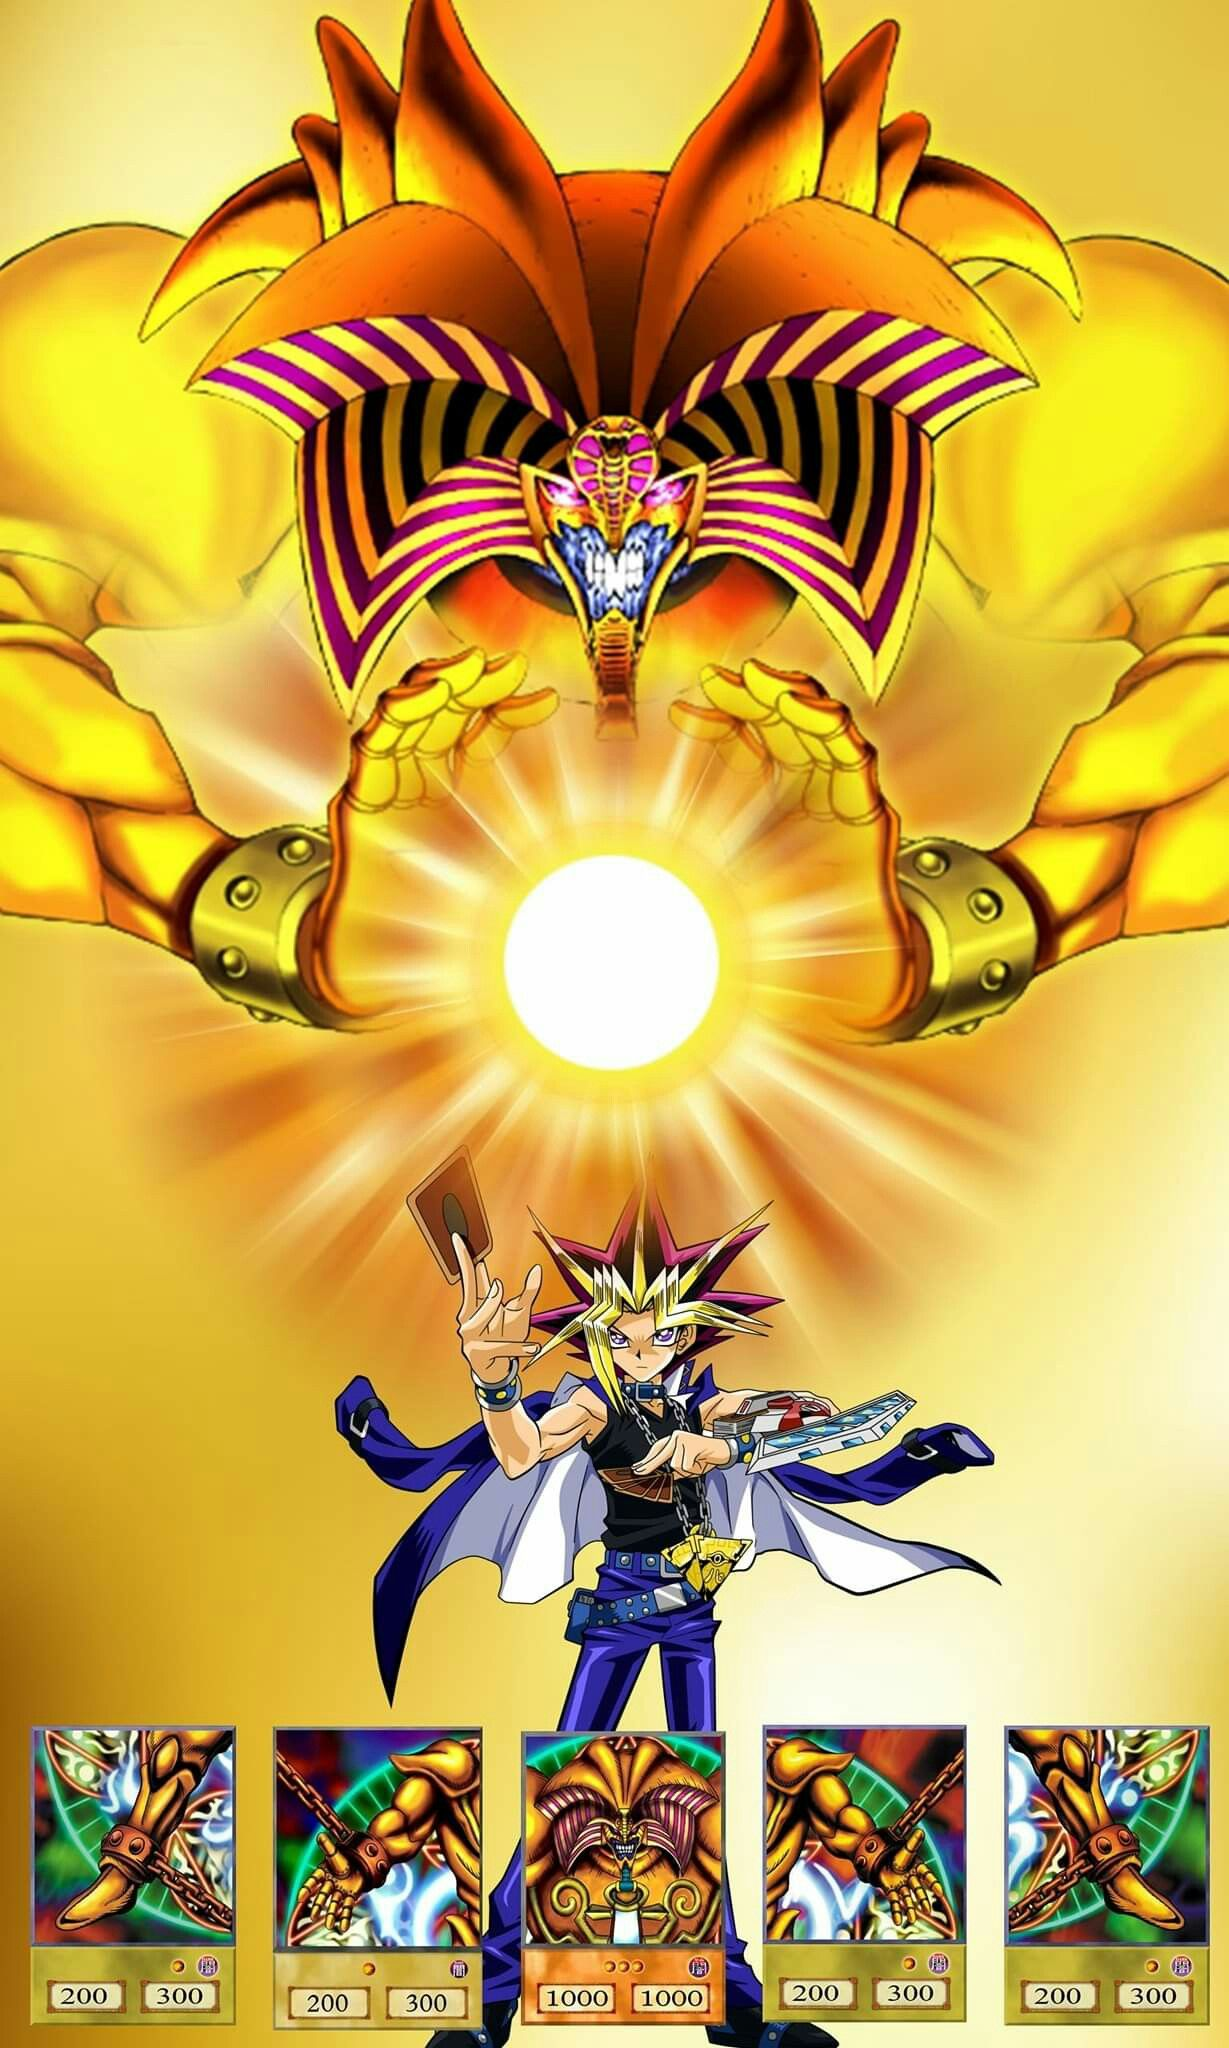 Yami Yugi And Exodia The Forbidden One Anime Desenho De Anime